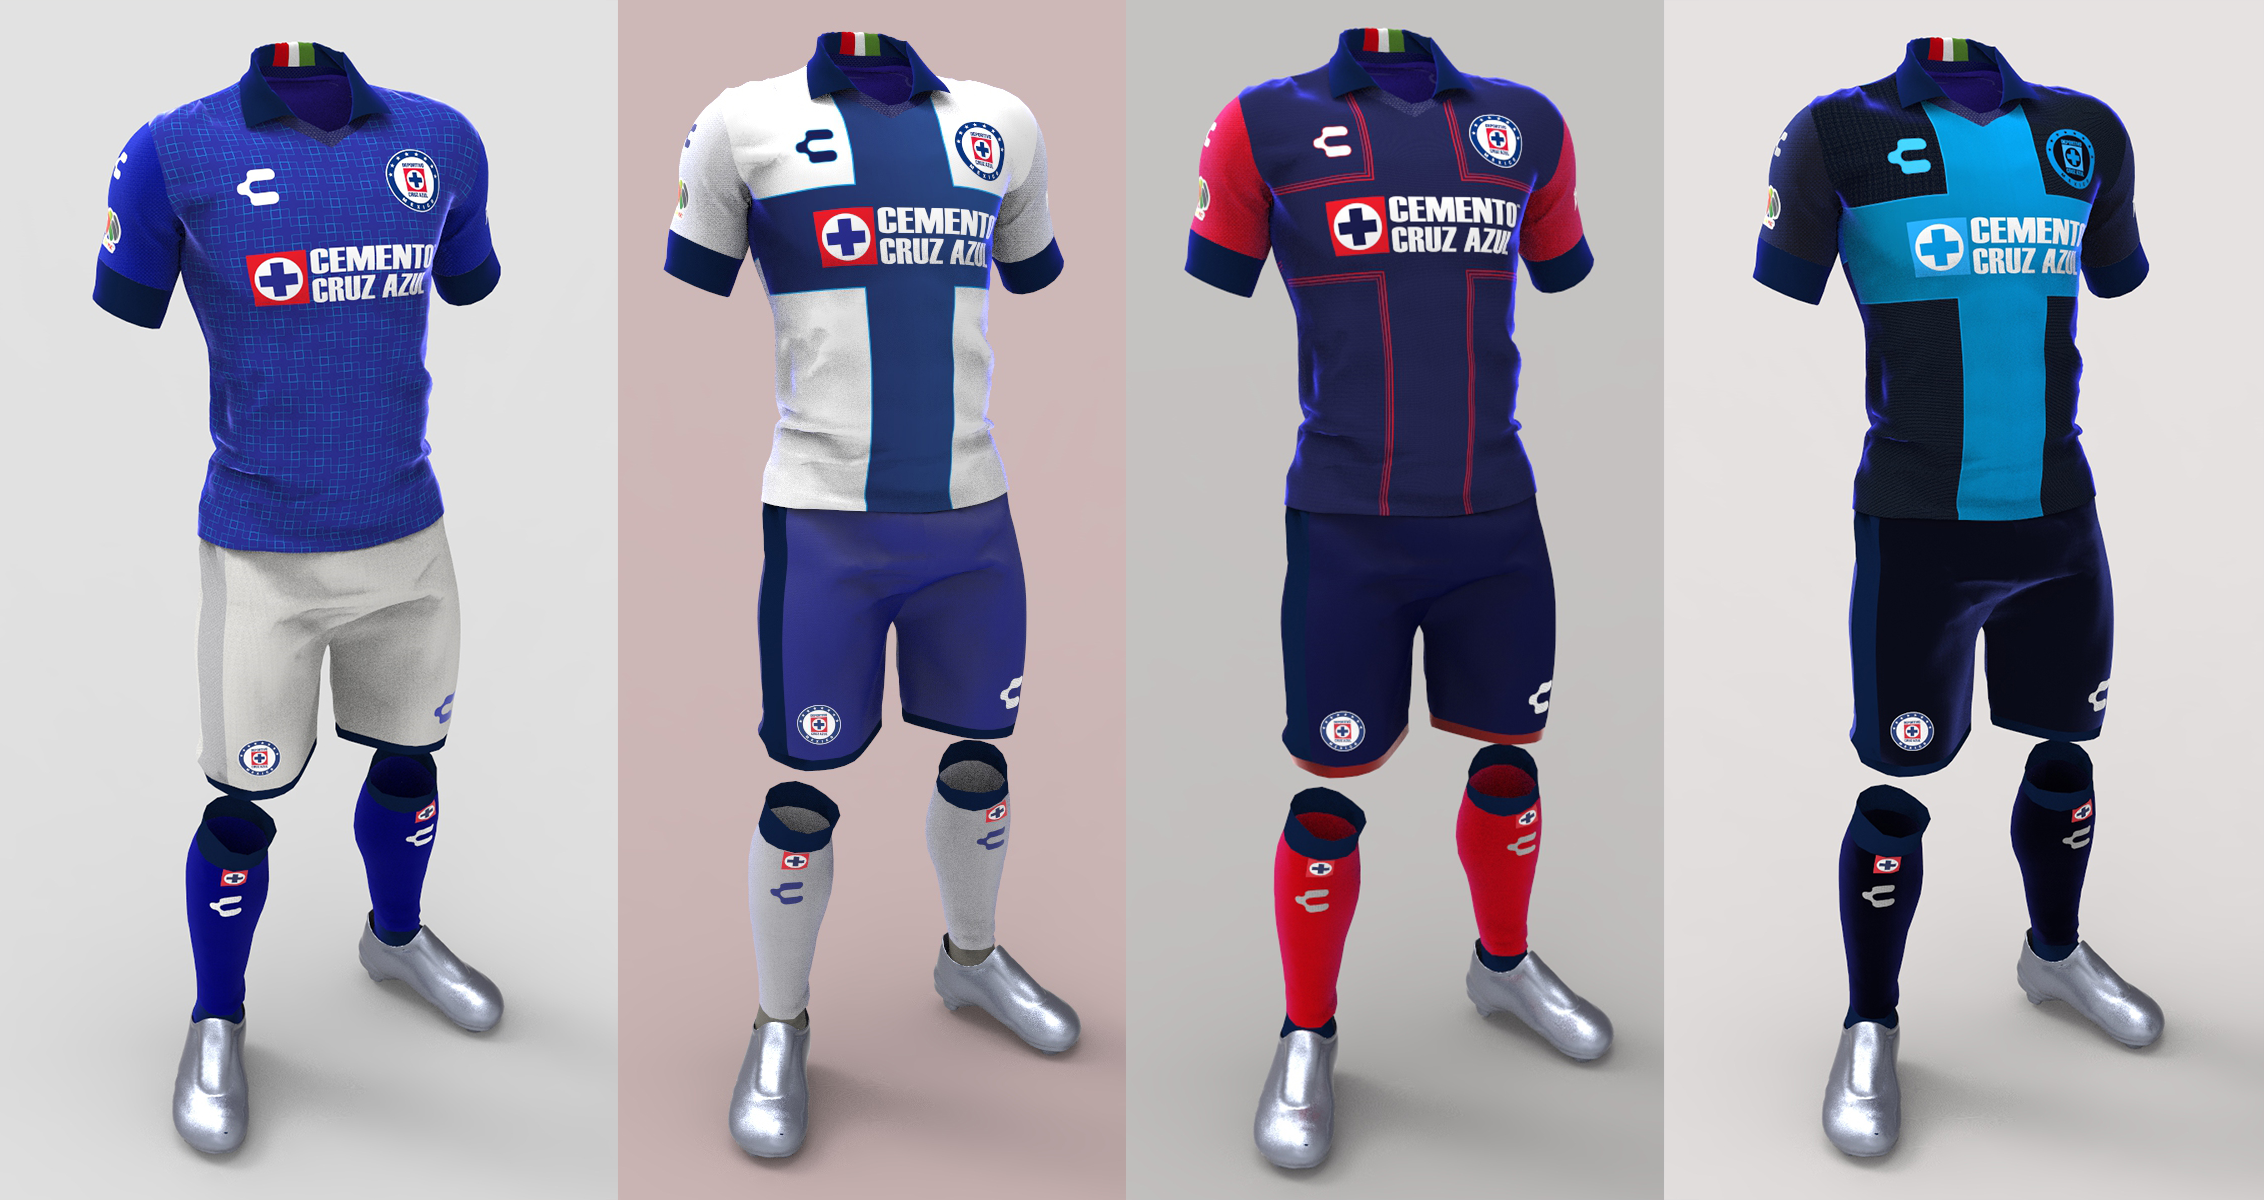 c51f7281 Diseños Deportivo Cruz Azul | uniformes sport | Sports, Football, Soccer